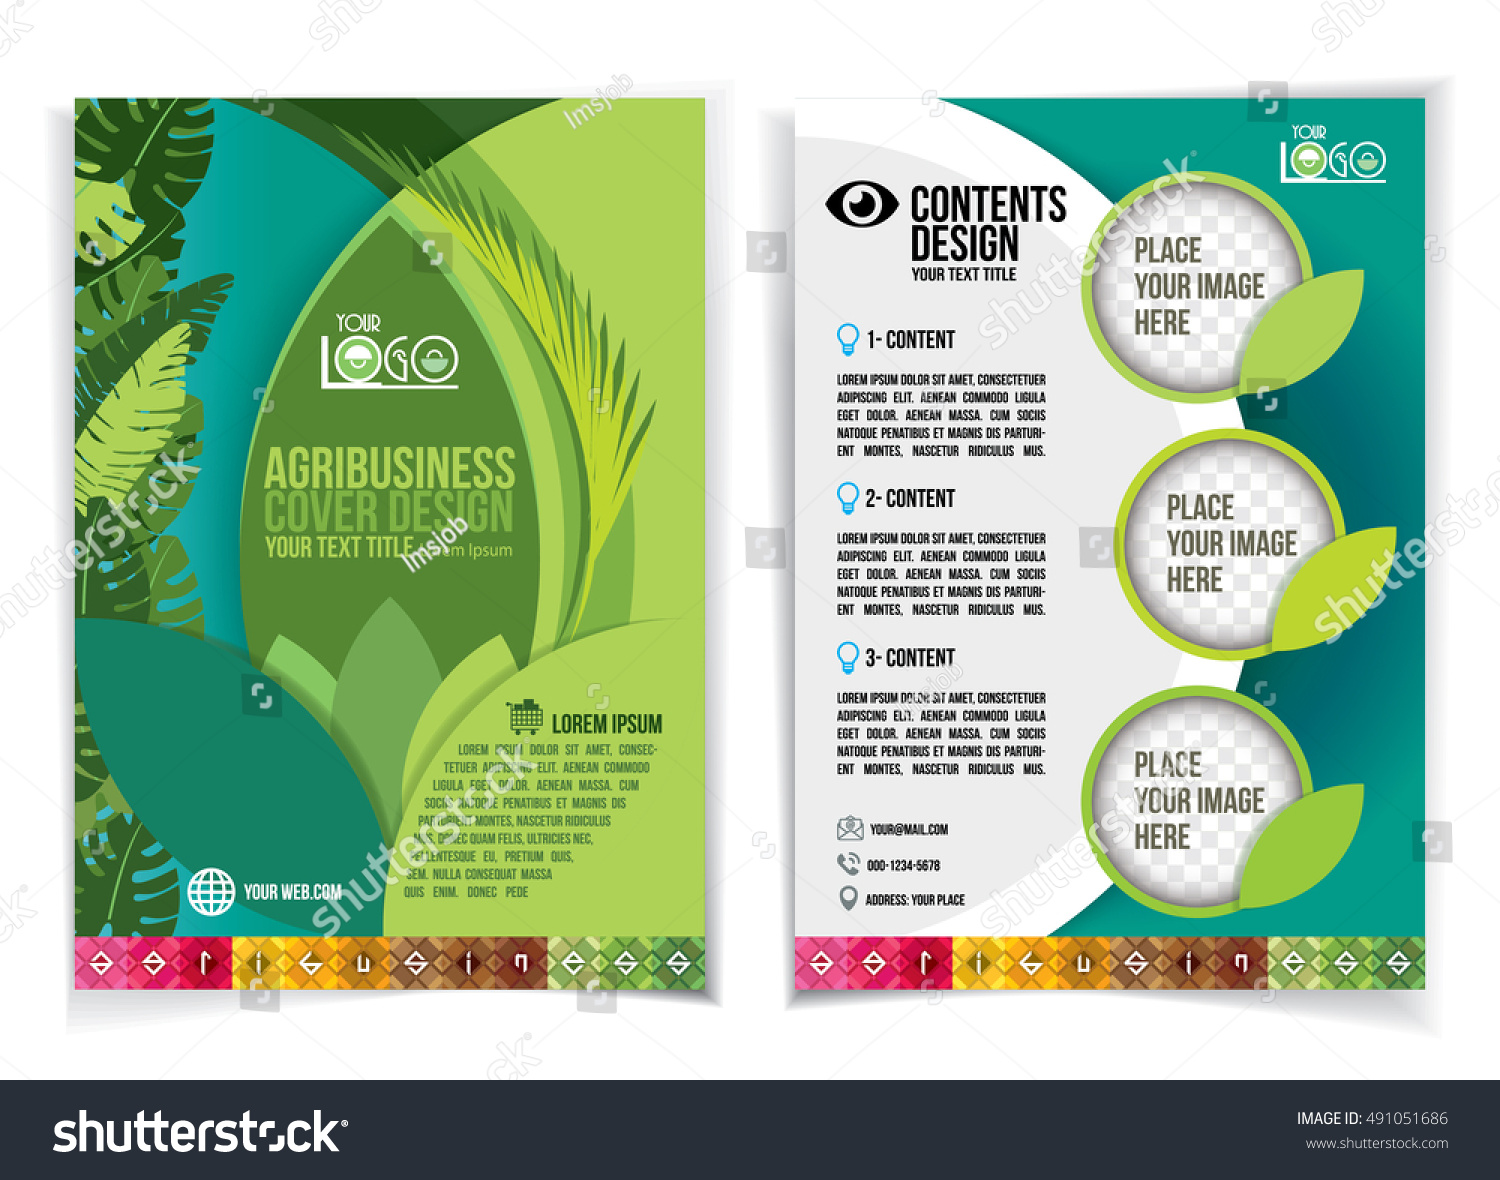 Brochure design industrial agriculture agribusiness design for Typography brochure design